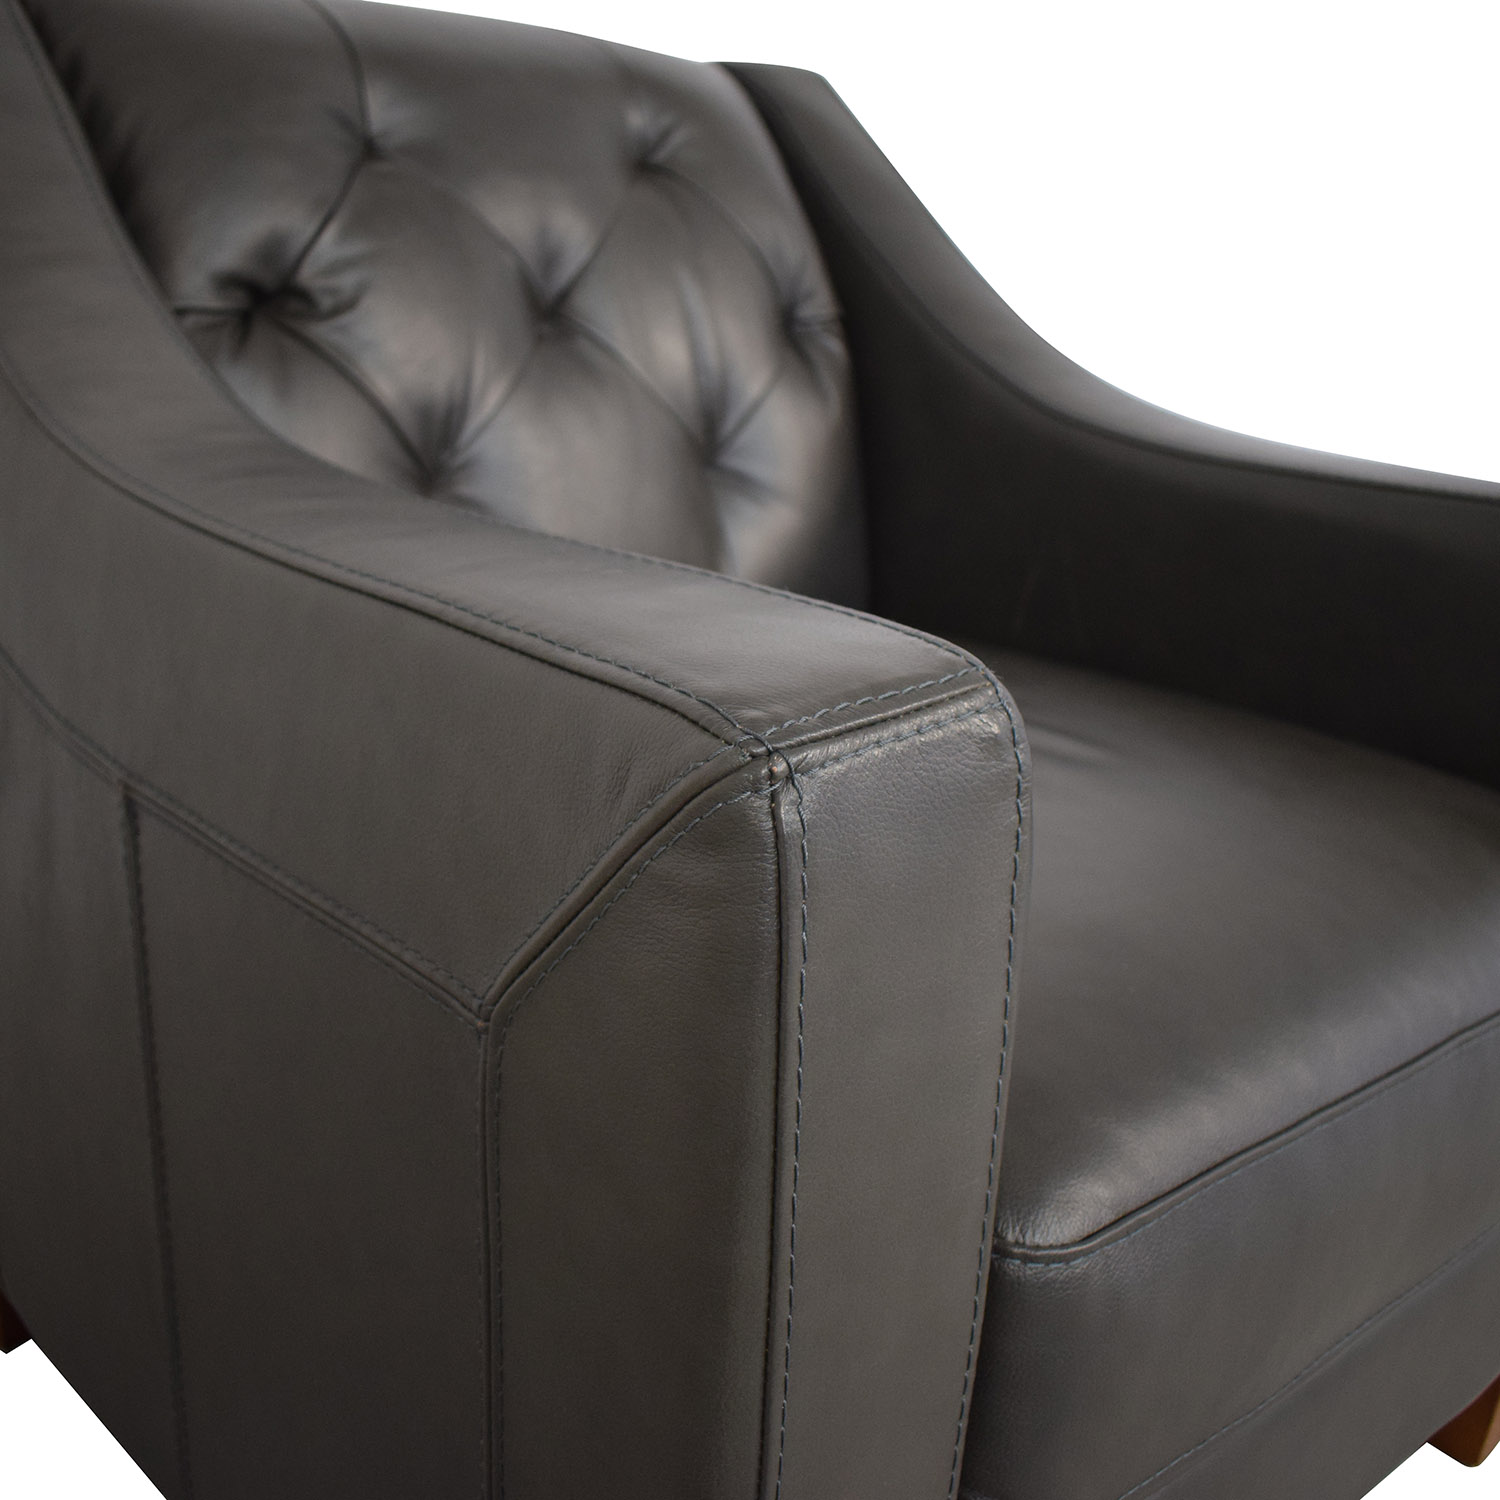 buy Macy's Macy's Chateau d'Ax Arm Chair online